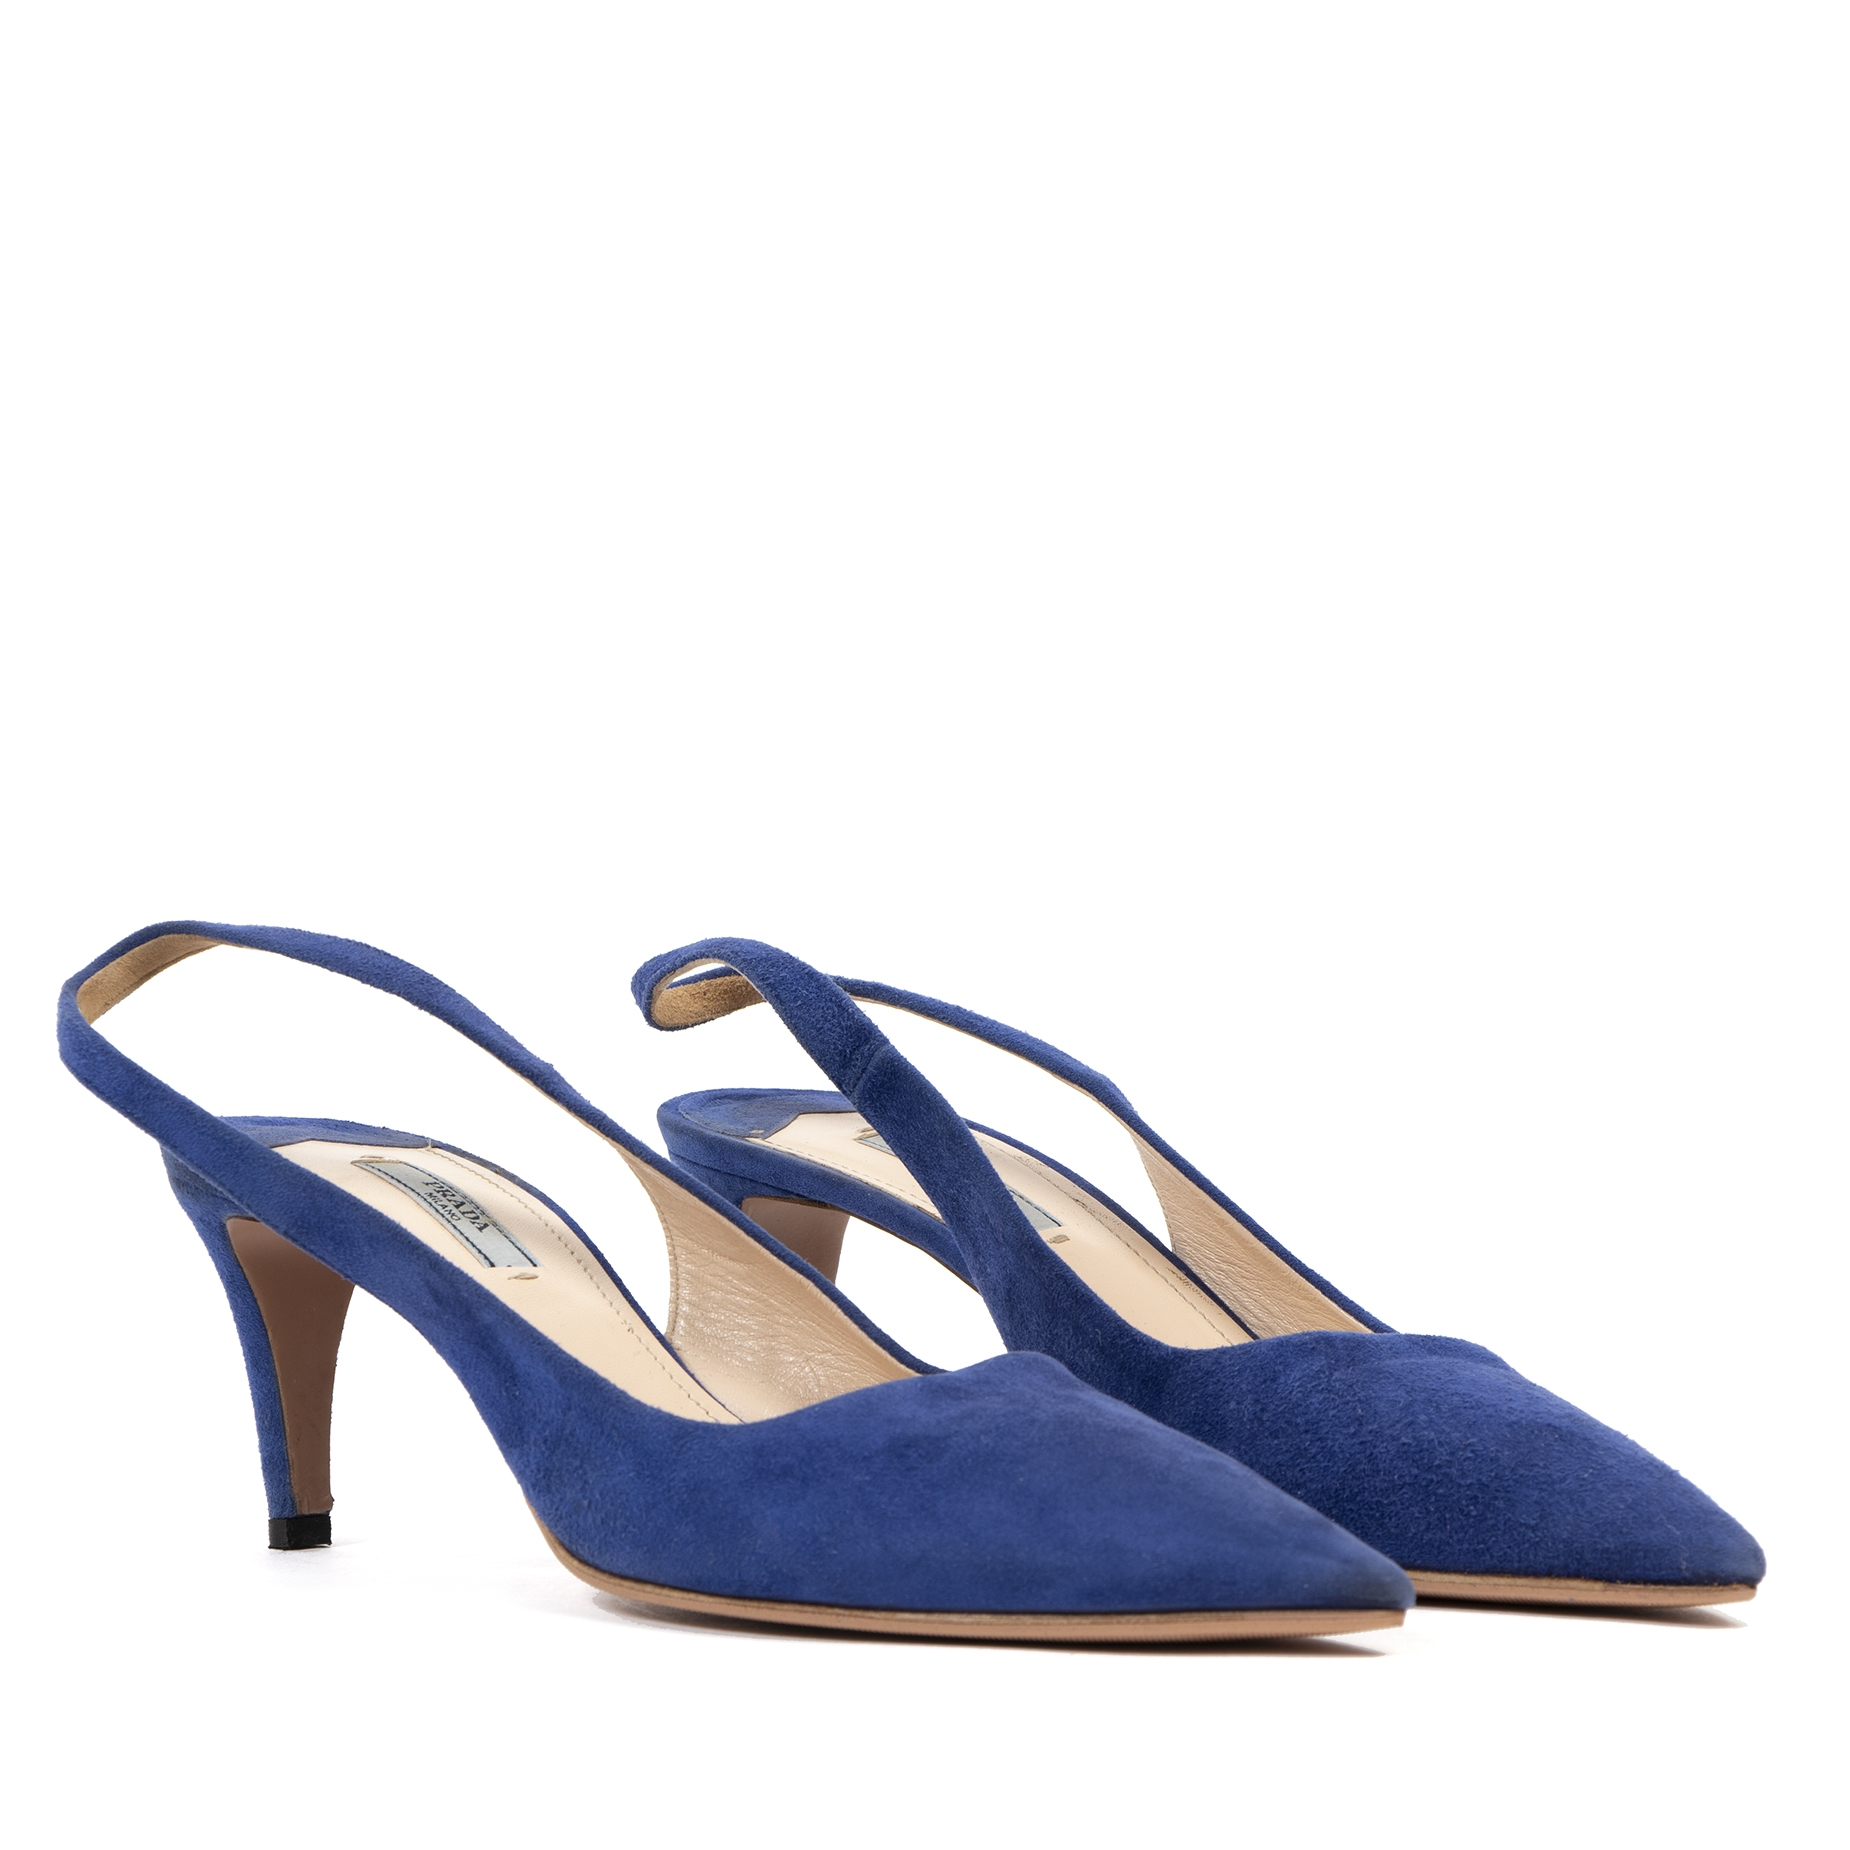 Buy and sell your authentic designer Prada Lake Blue 65 Suede Slingback Pumps